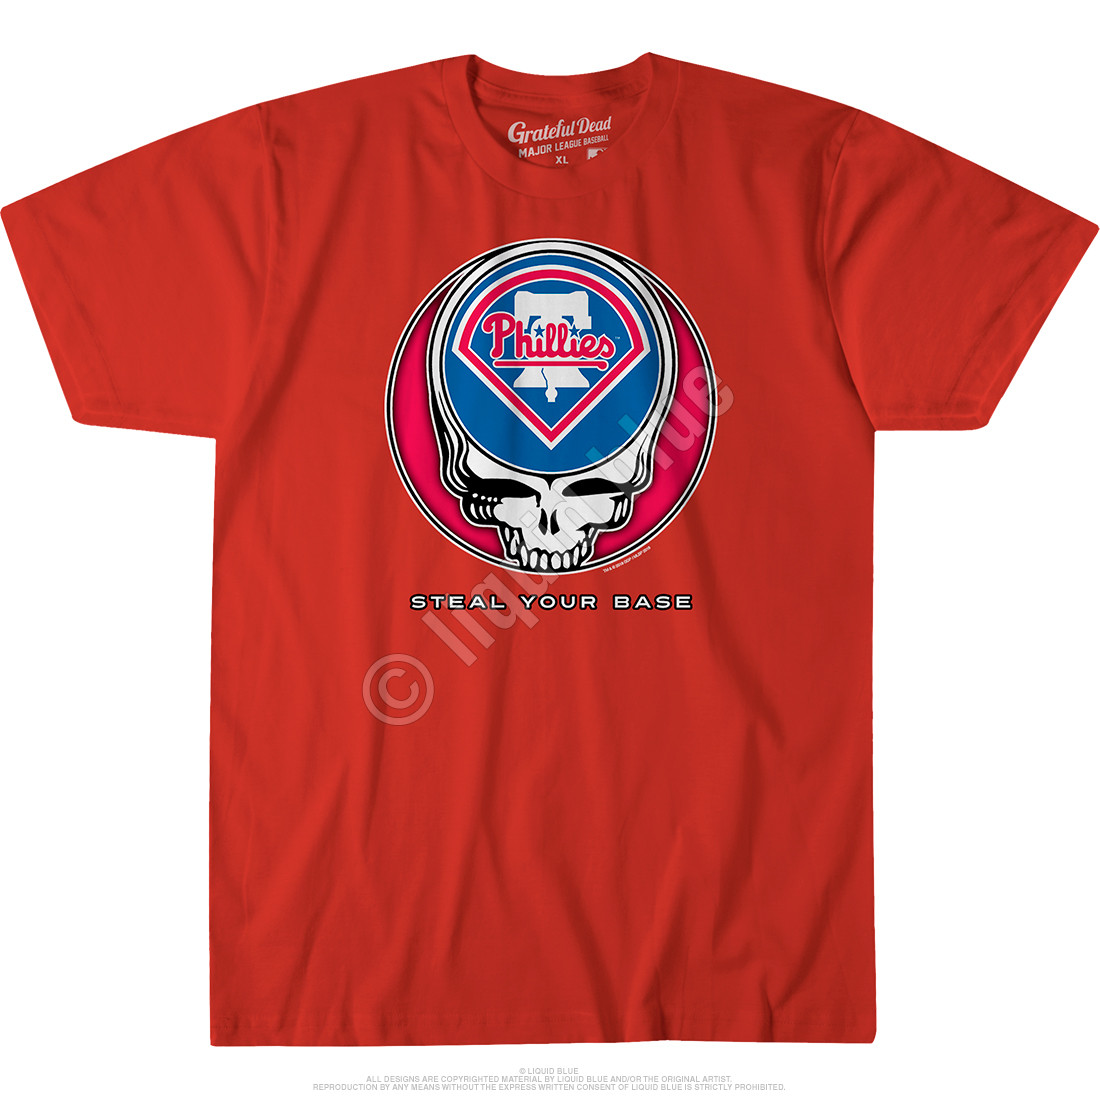 Philadelphia Phillies Steal Your Base Red Athletic T-Shirt